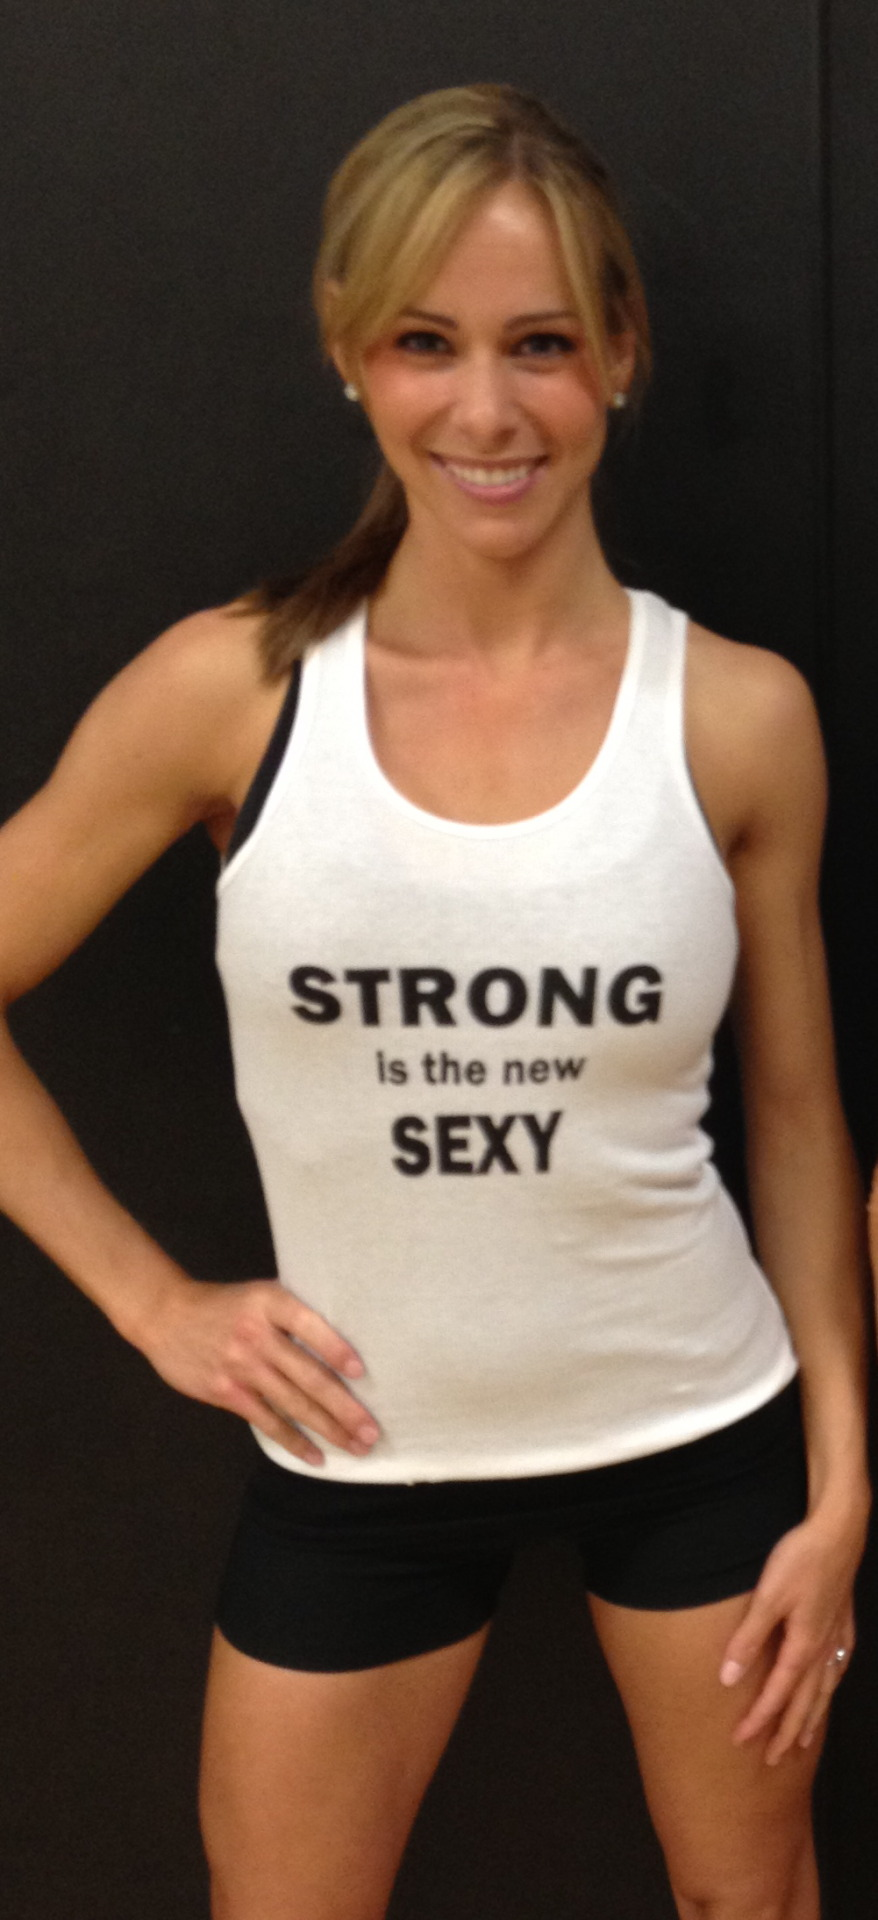 motivatehopestrength:  STRONG IS THE NEW SEXY - American Apparel Tank at: http://hopenagy.com/motivatehopestrength___hope_nagy/Tanks%26Tees.html